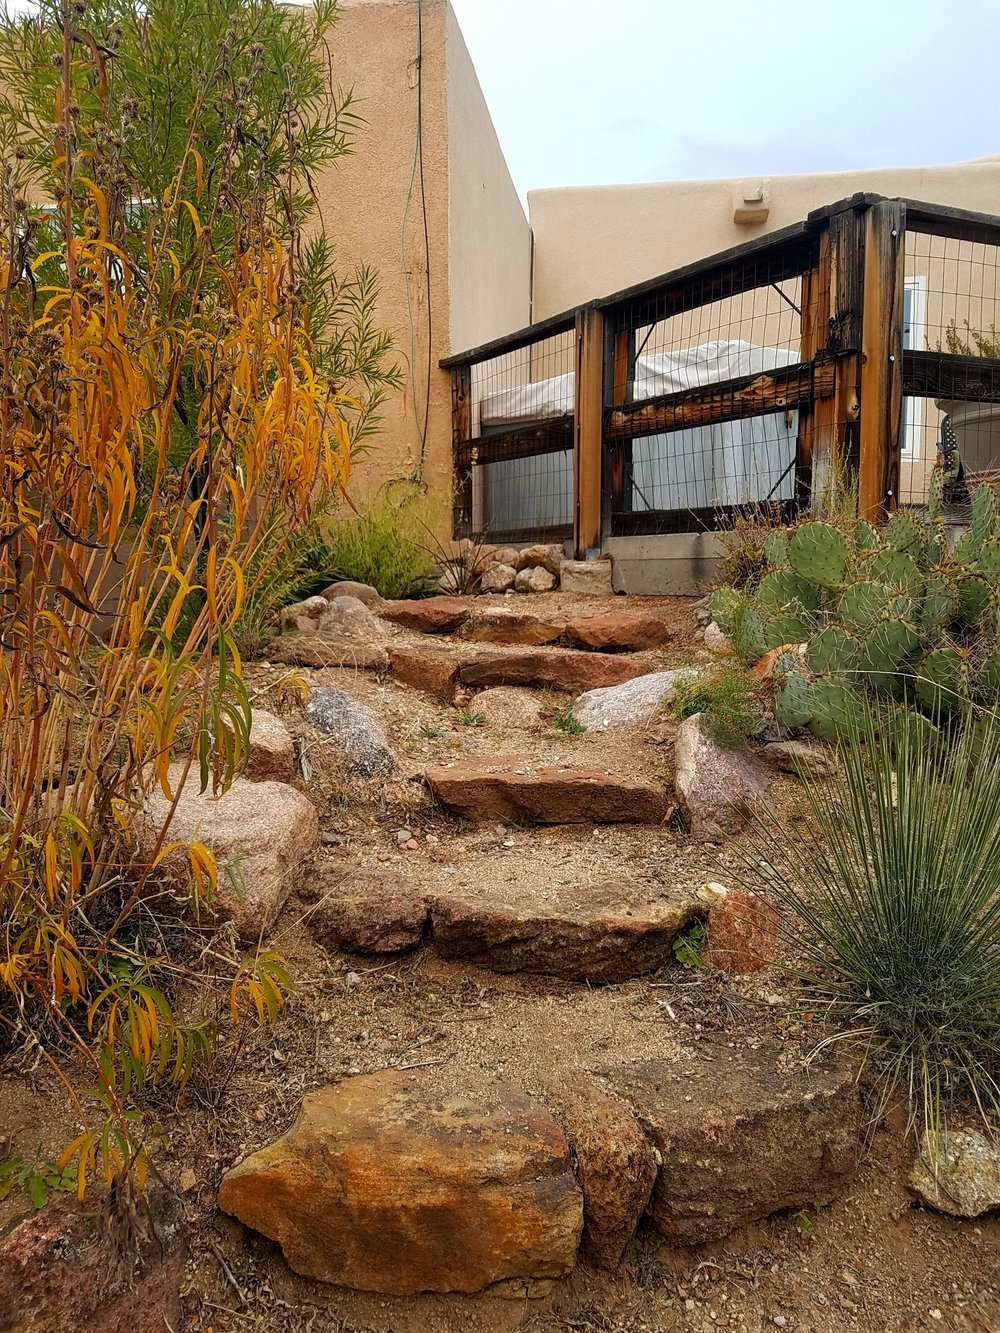 southwesthorticultureFall is my favorite time to just check on some of our previous installs. These natural stone stairs in this client's native landscape in the foothills are still looking great and the #plants are filling in nicely as well.  #southwesthorticulture #xeriscaping #xeriscape #landscaping #landscapes #Albuquerque #newmexico